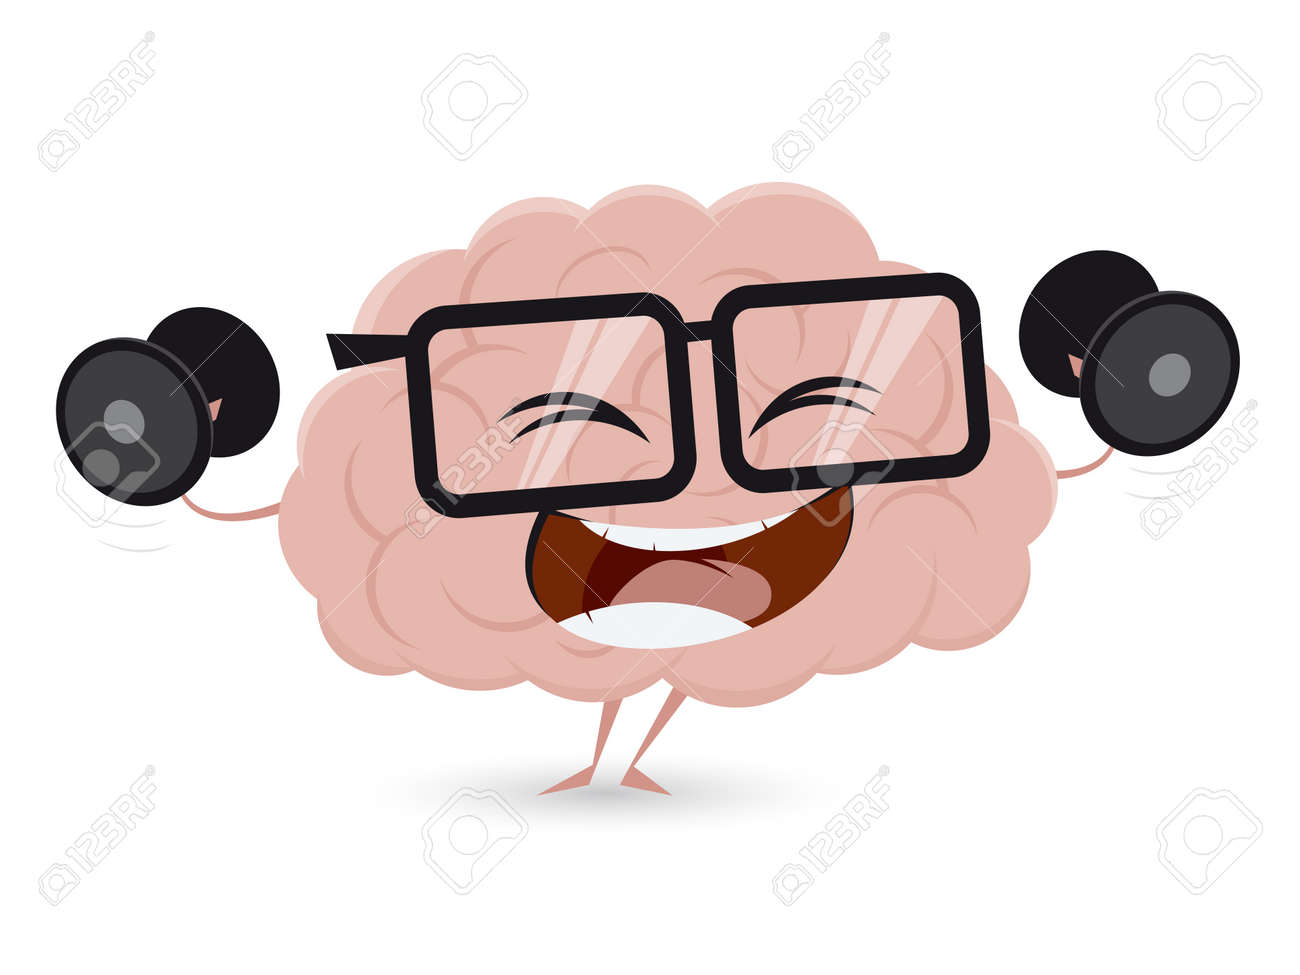 hight resolution of funny brain workout with dumbbells clipart stock vector 62340988